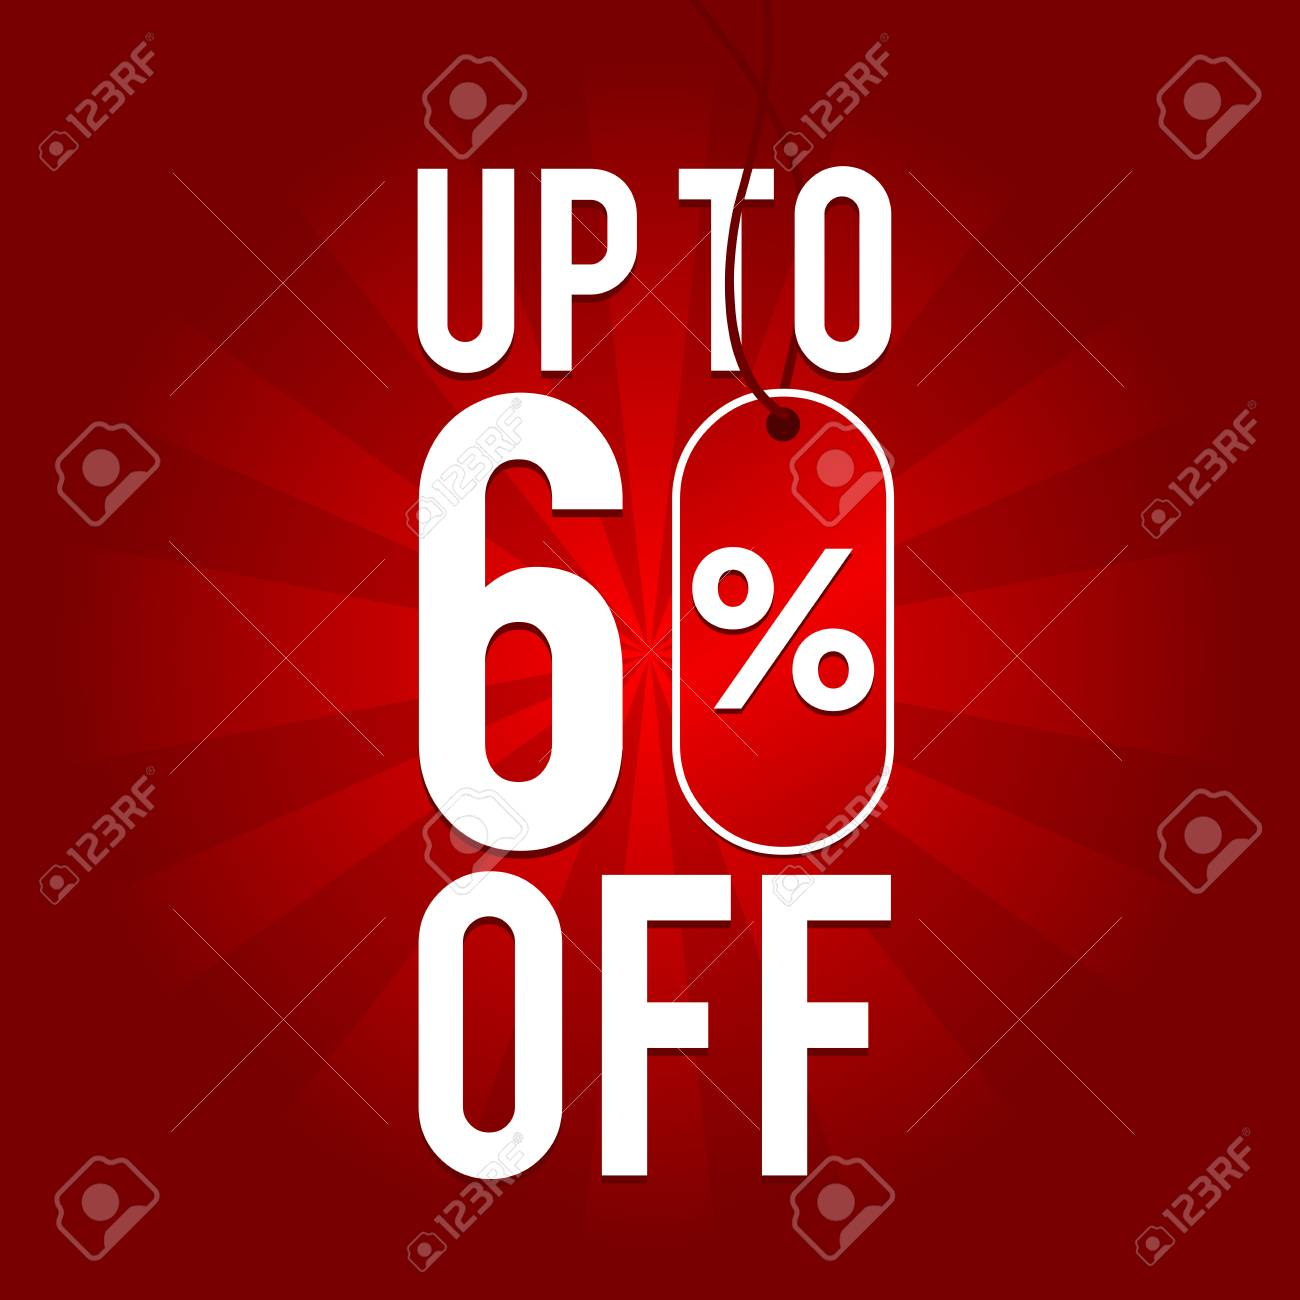 f492be525 Sale up to 60% off on red background. Stock Vector - 93464886